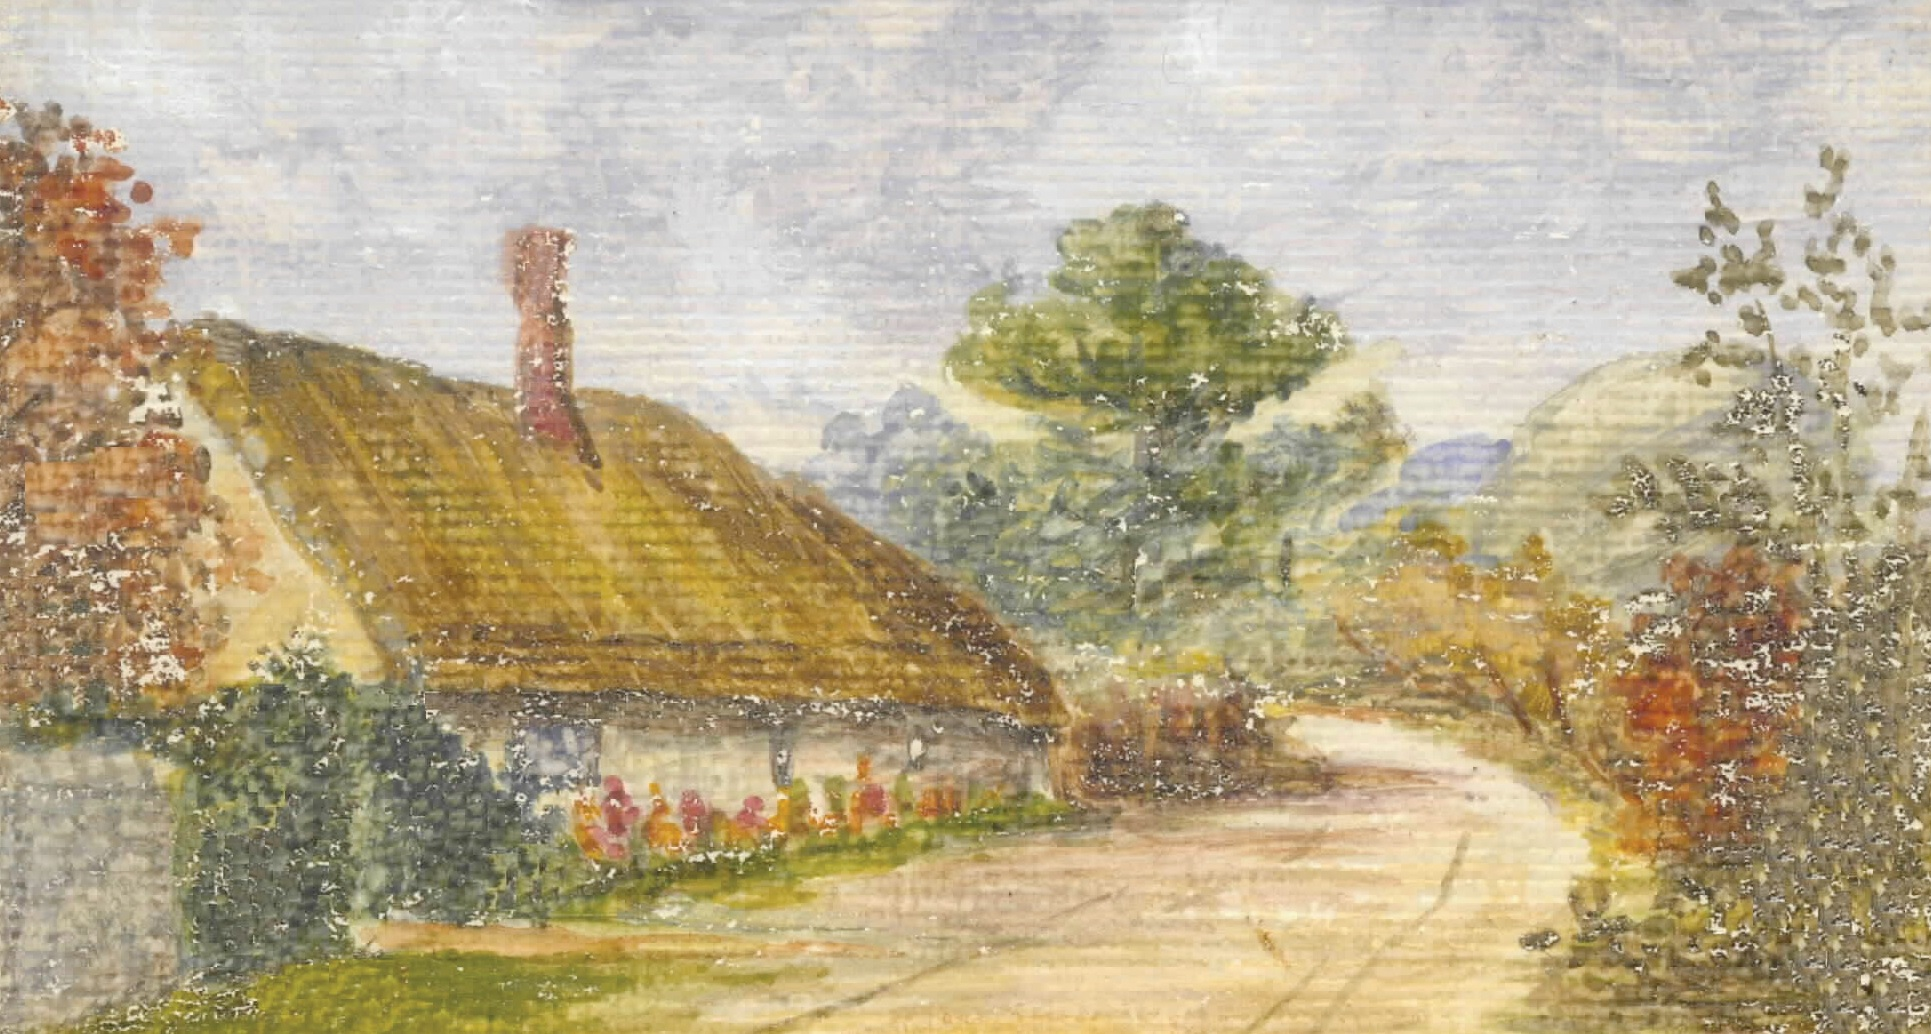 Binsted poorhouse painted by Charlotte Read